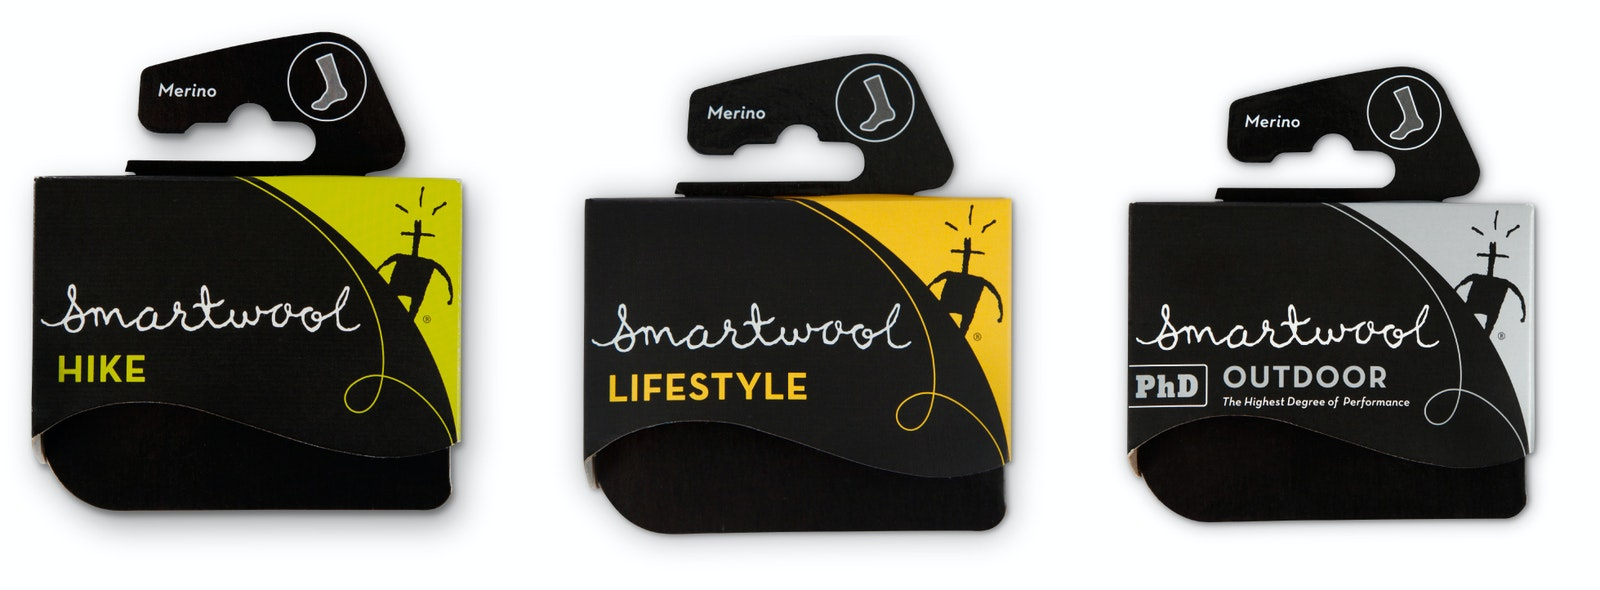 Smartwool covers three